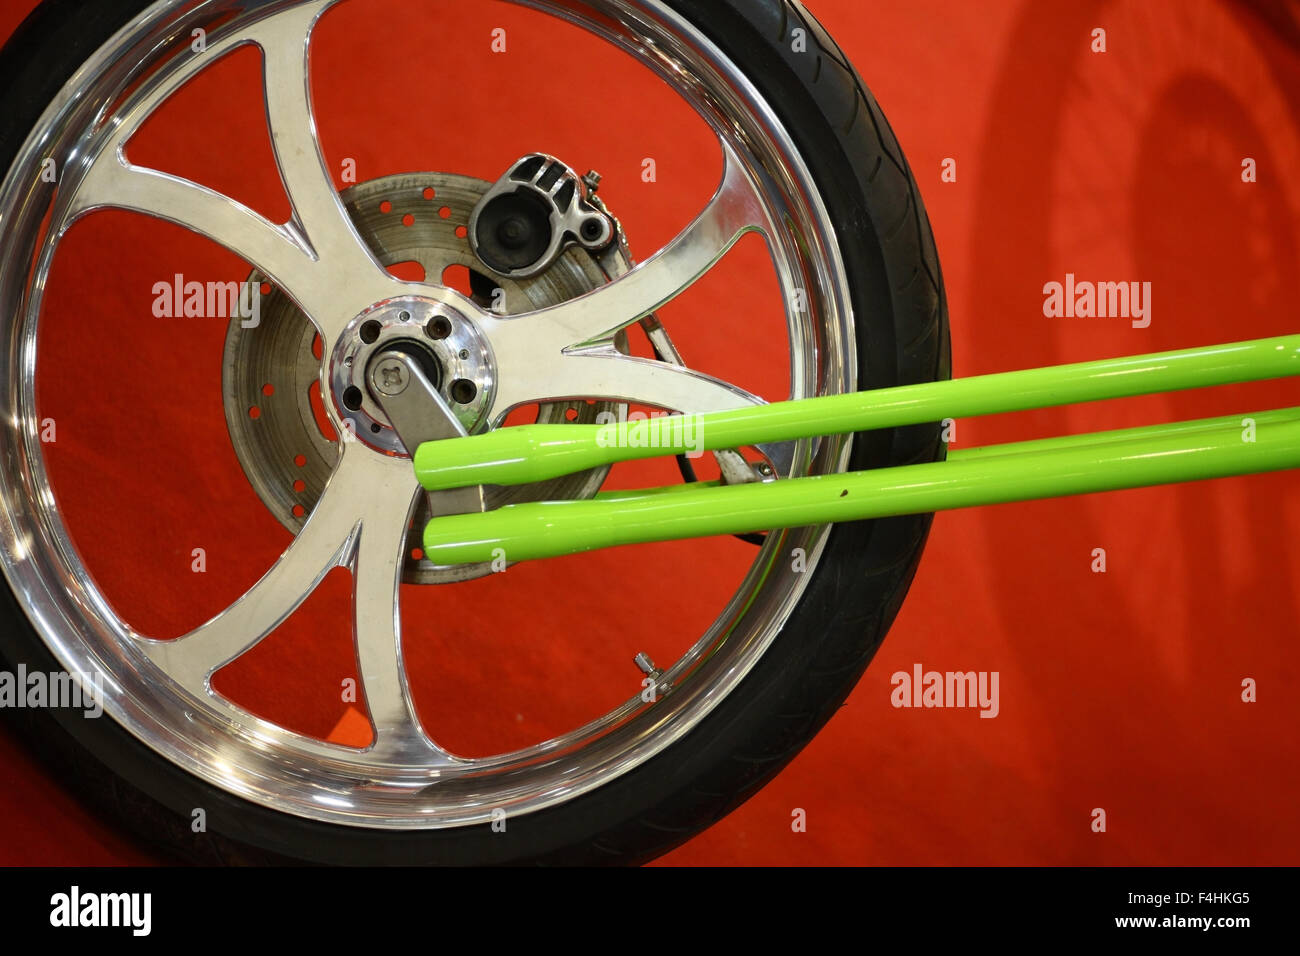 Color close up of a motorcycle wheel. Stock Photo